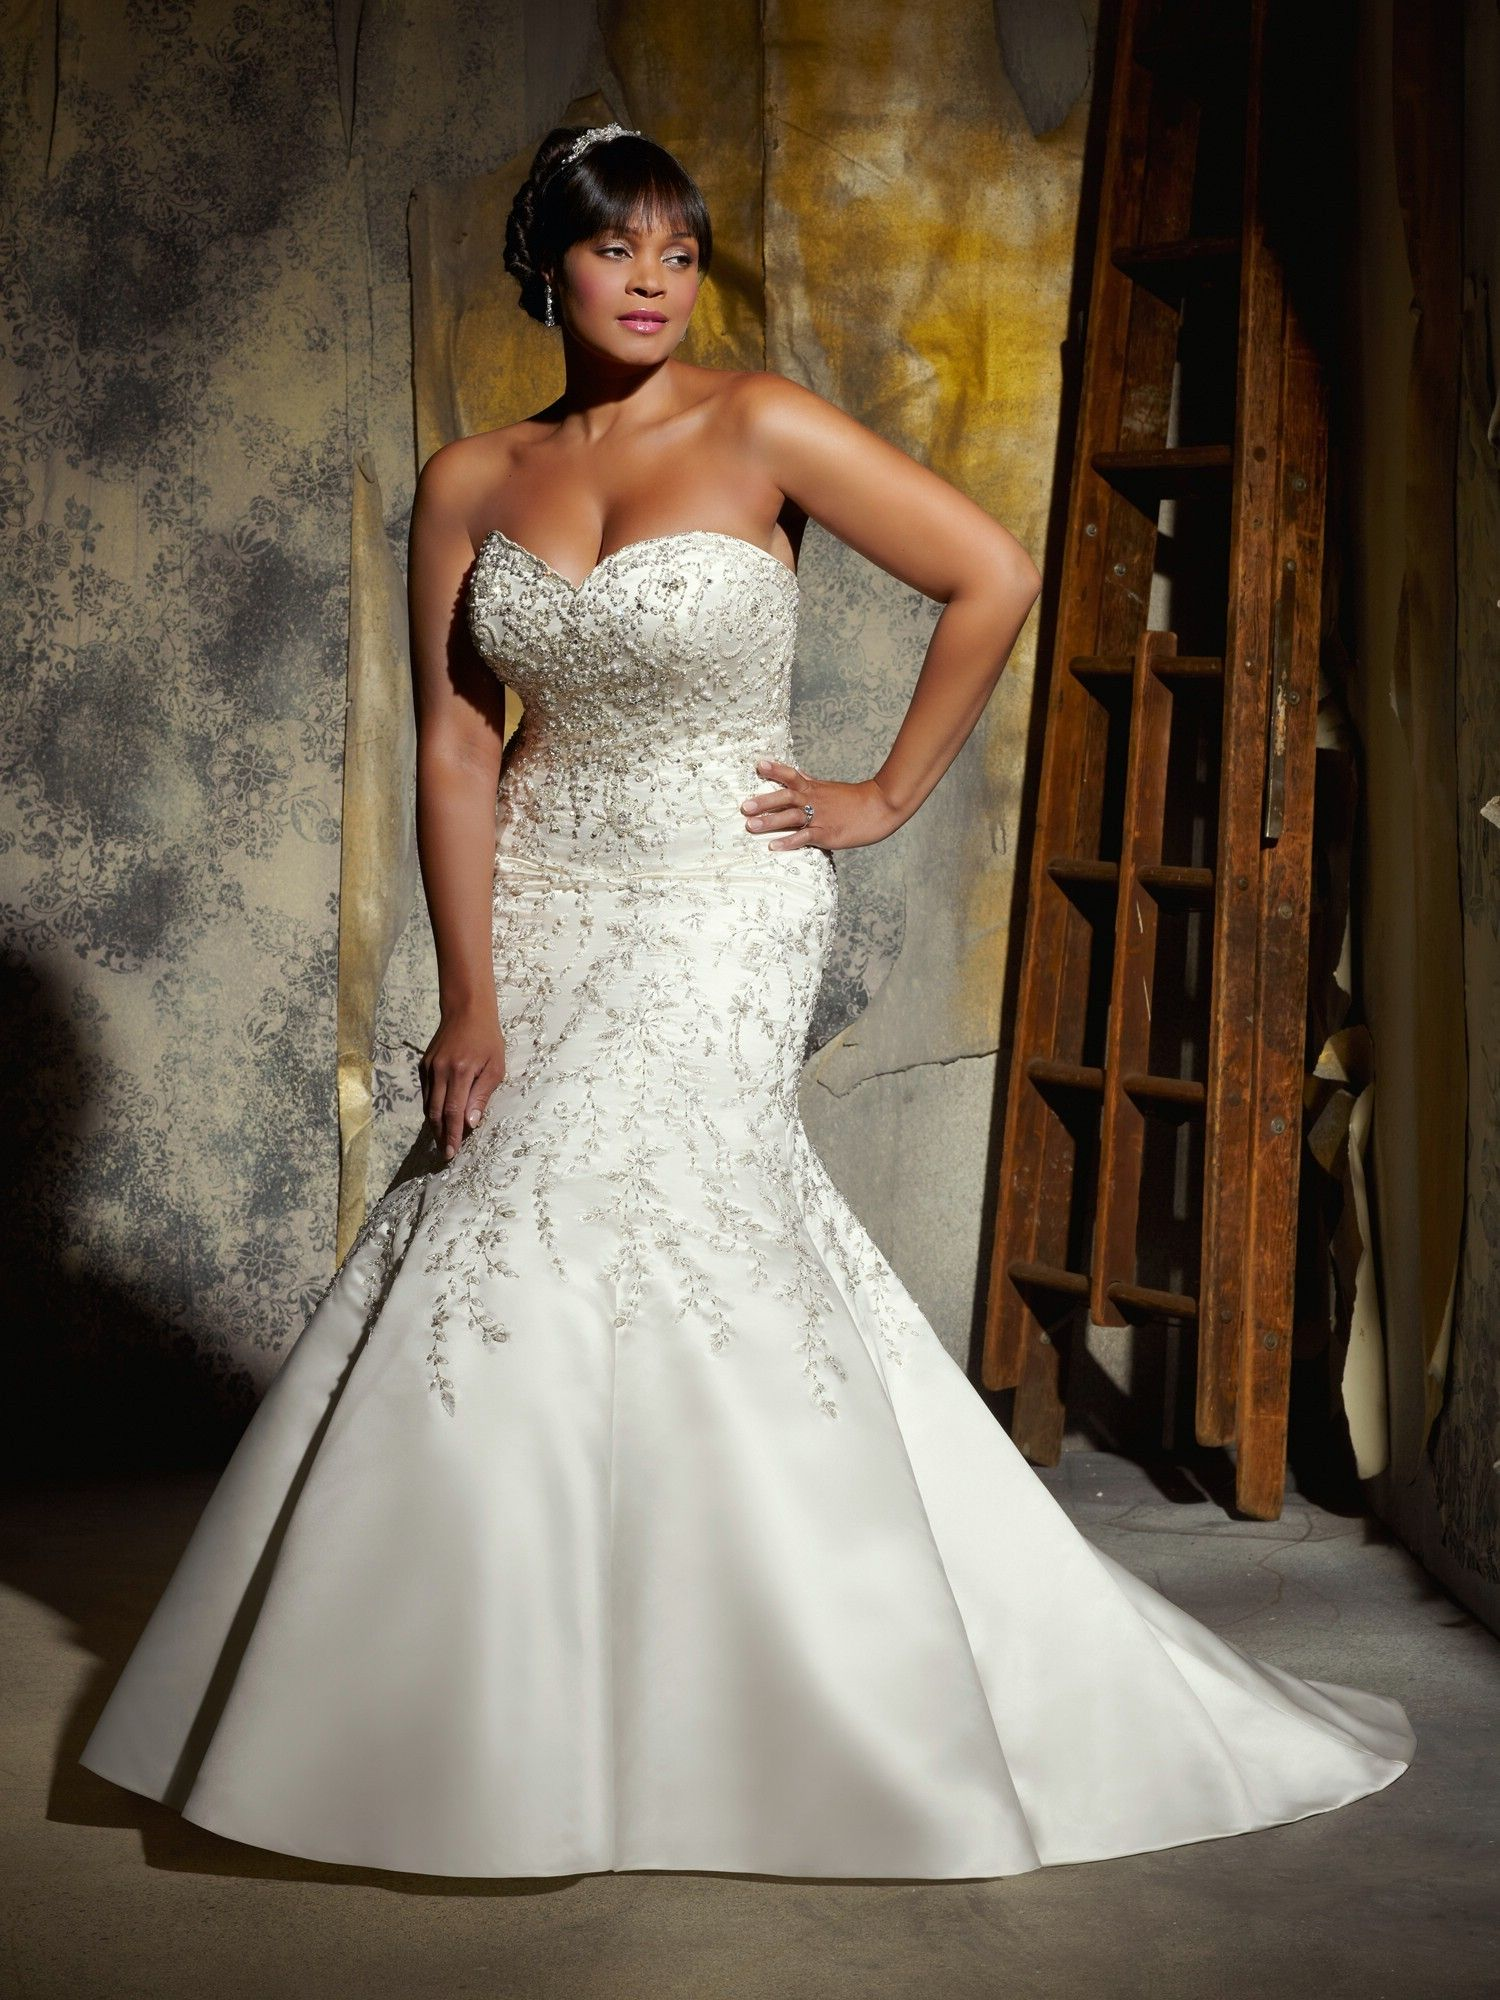 plus size wedding dresses plus sized wedding dresses plus size wedding dresses mermaid style google search